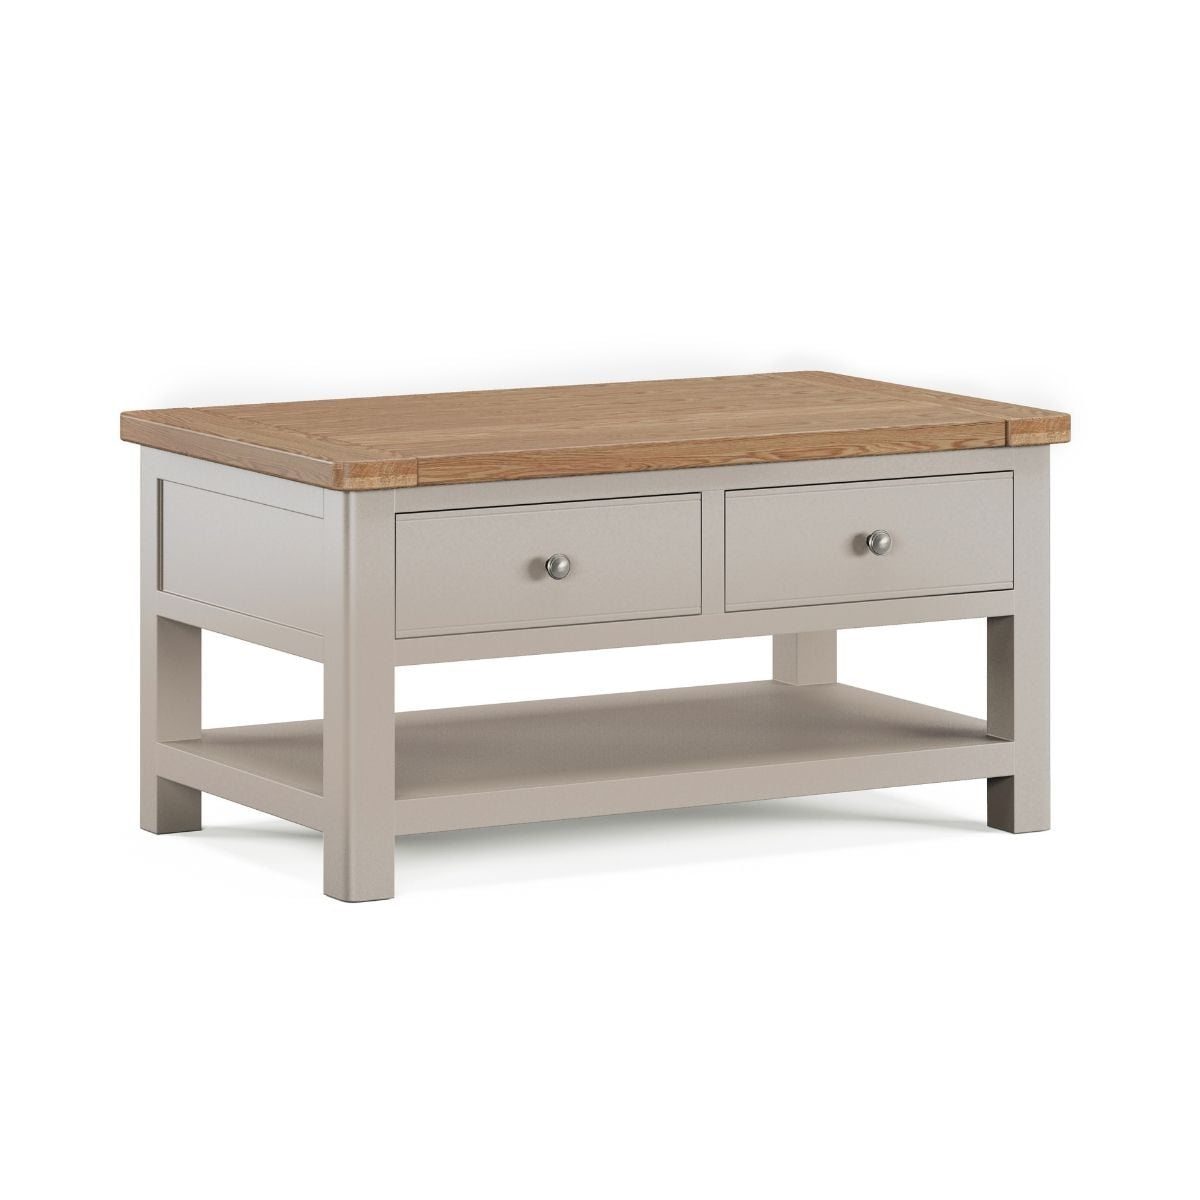 2 drawer grey wood coffee table